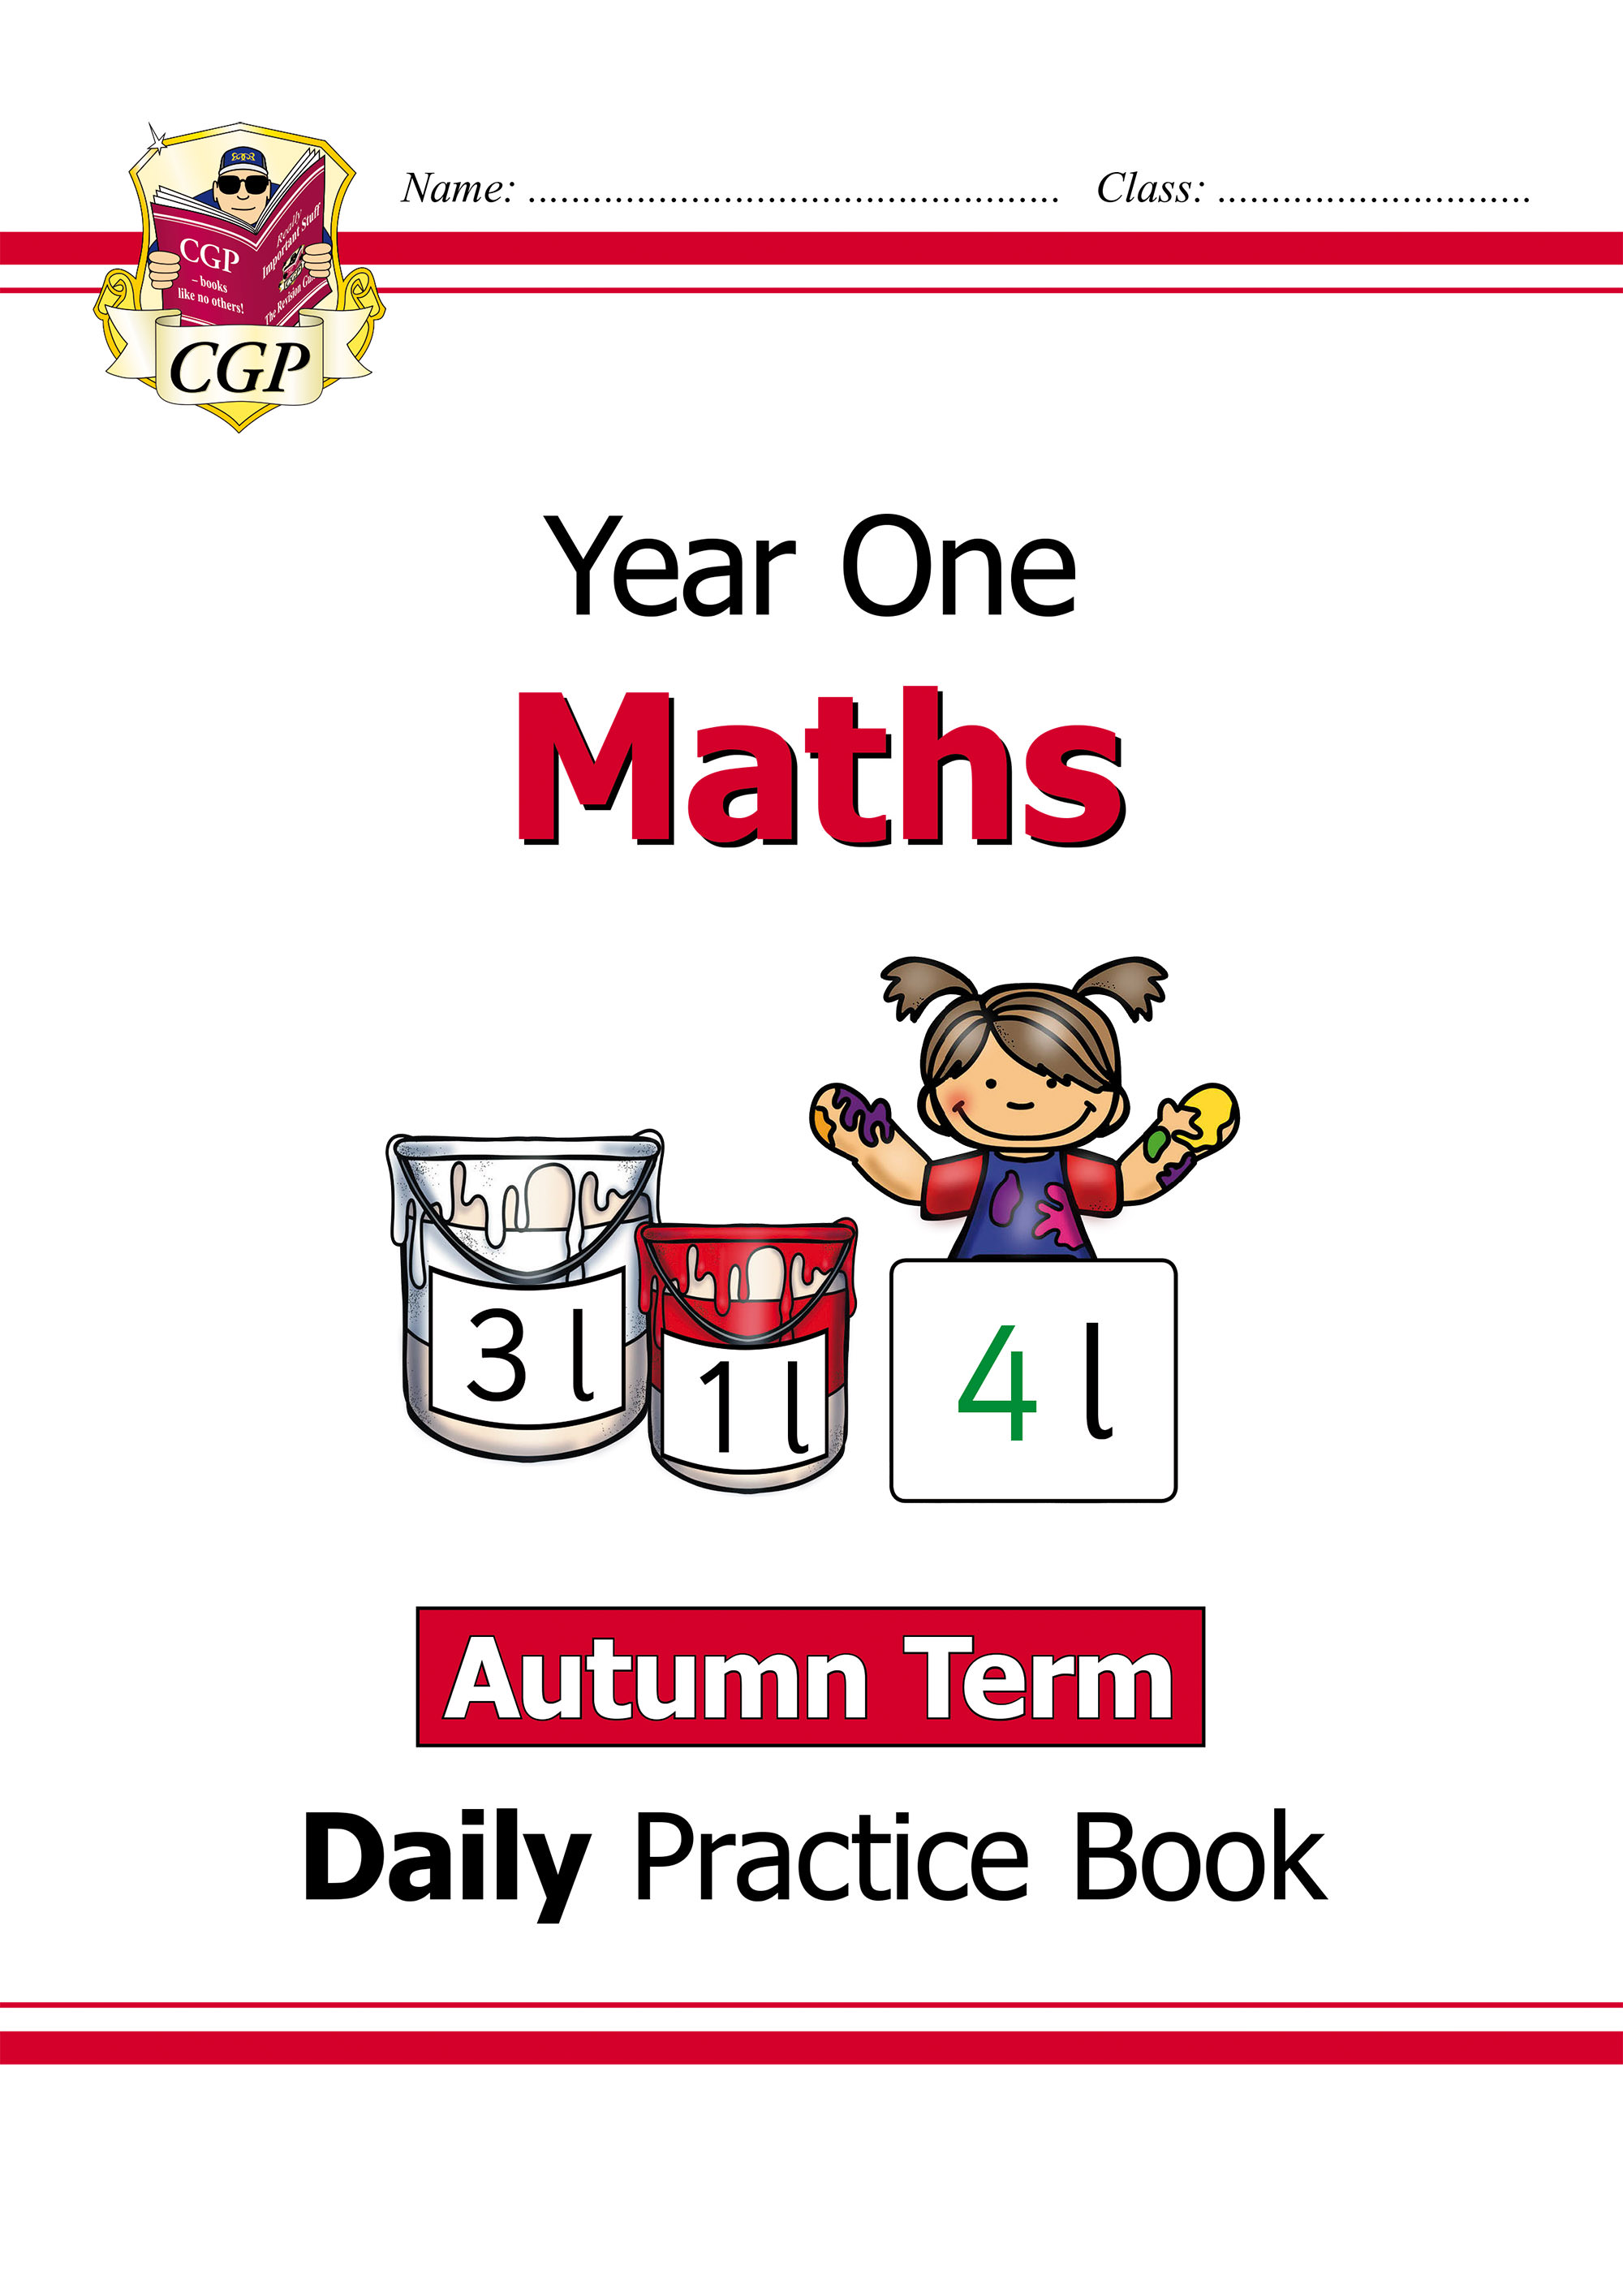 M1WAU11D - New KS1 Maths Daily Practice Book: Year 1 - Autumn Term Online Edition